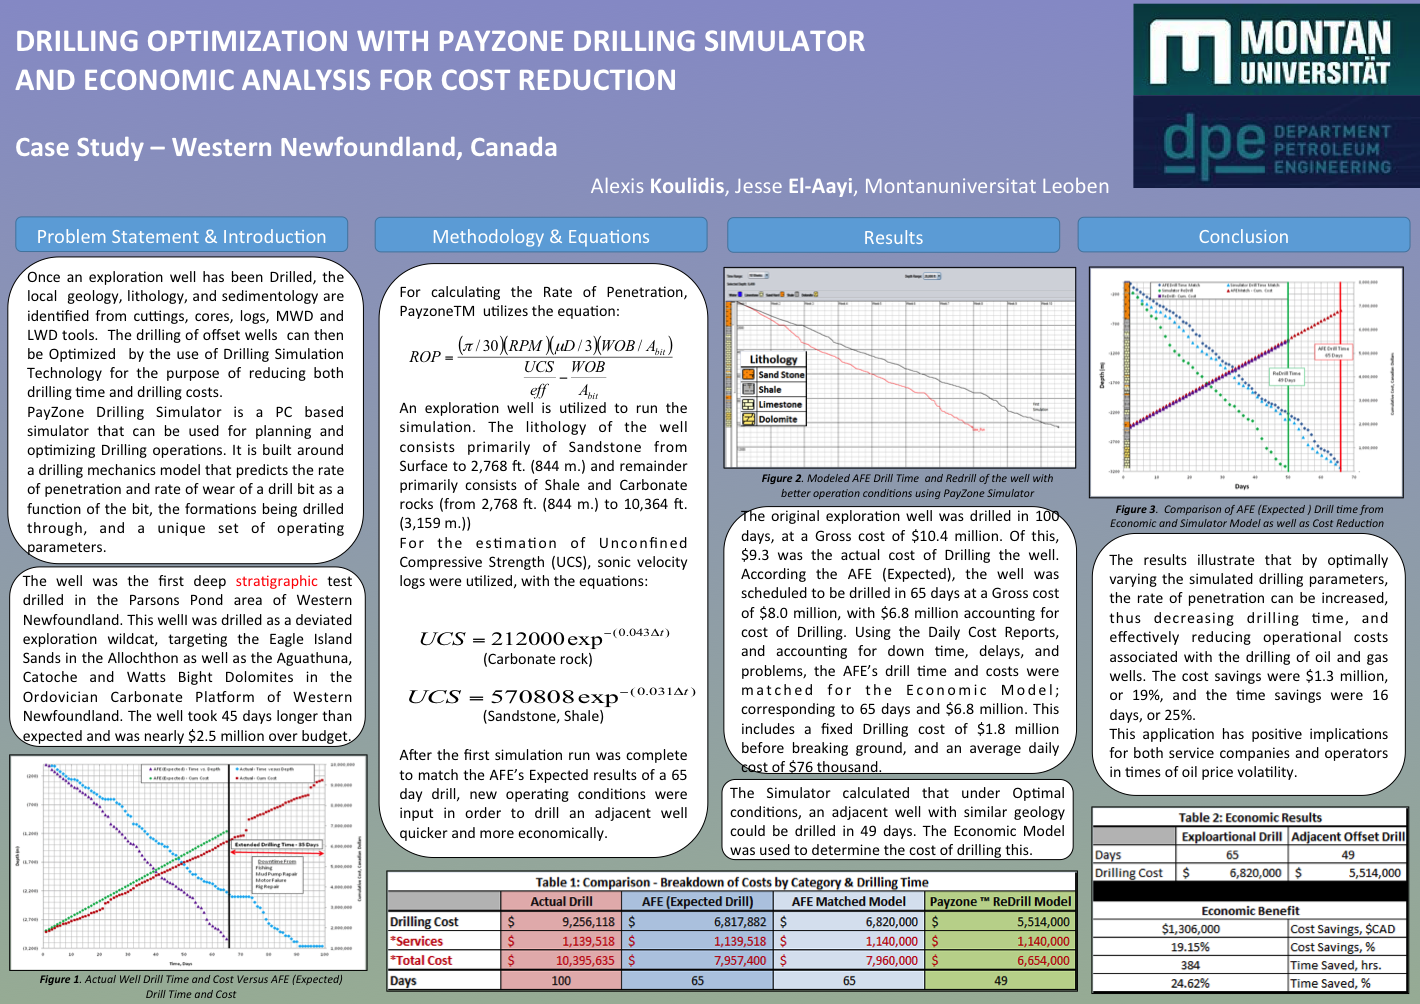 Drilling Optimization with Payzone Drilling Simulator and Economic Analysis for Cost Reduction